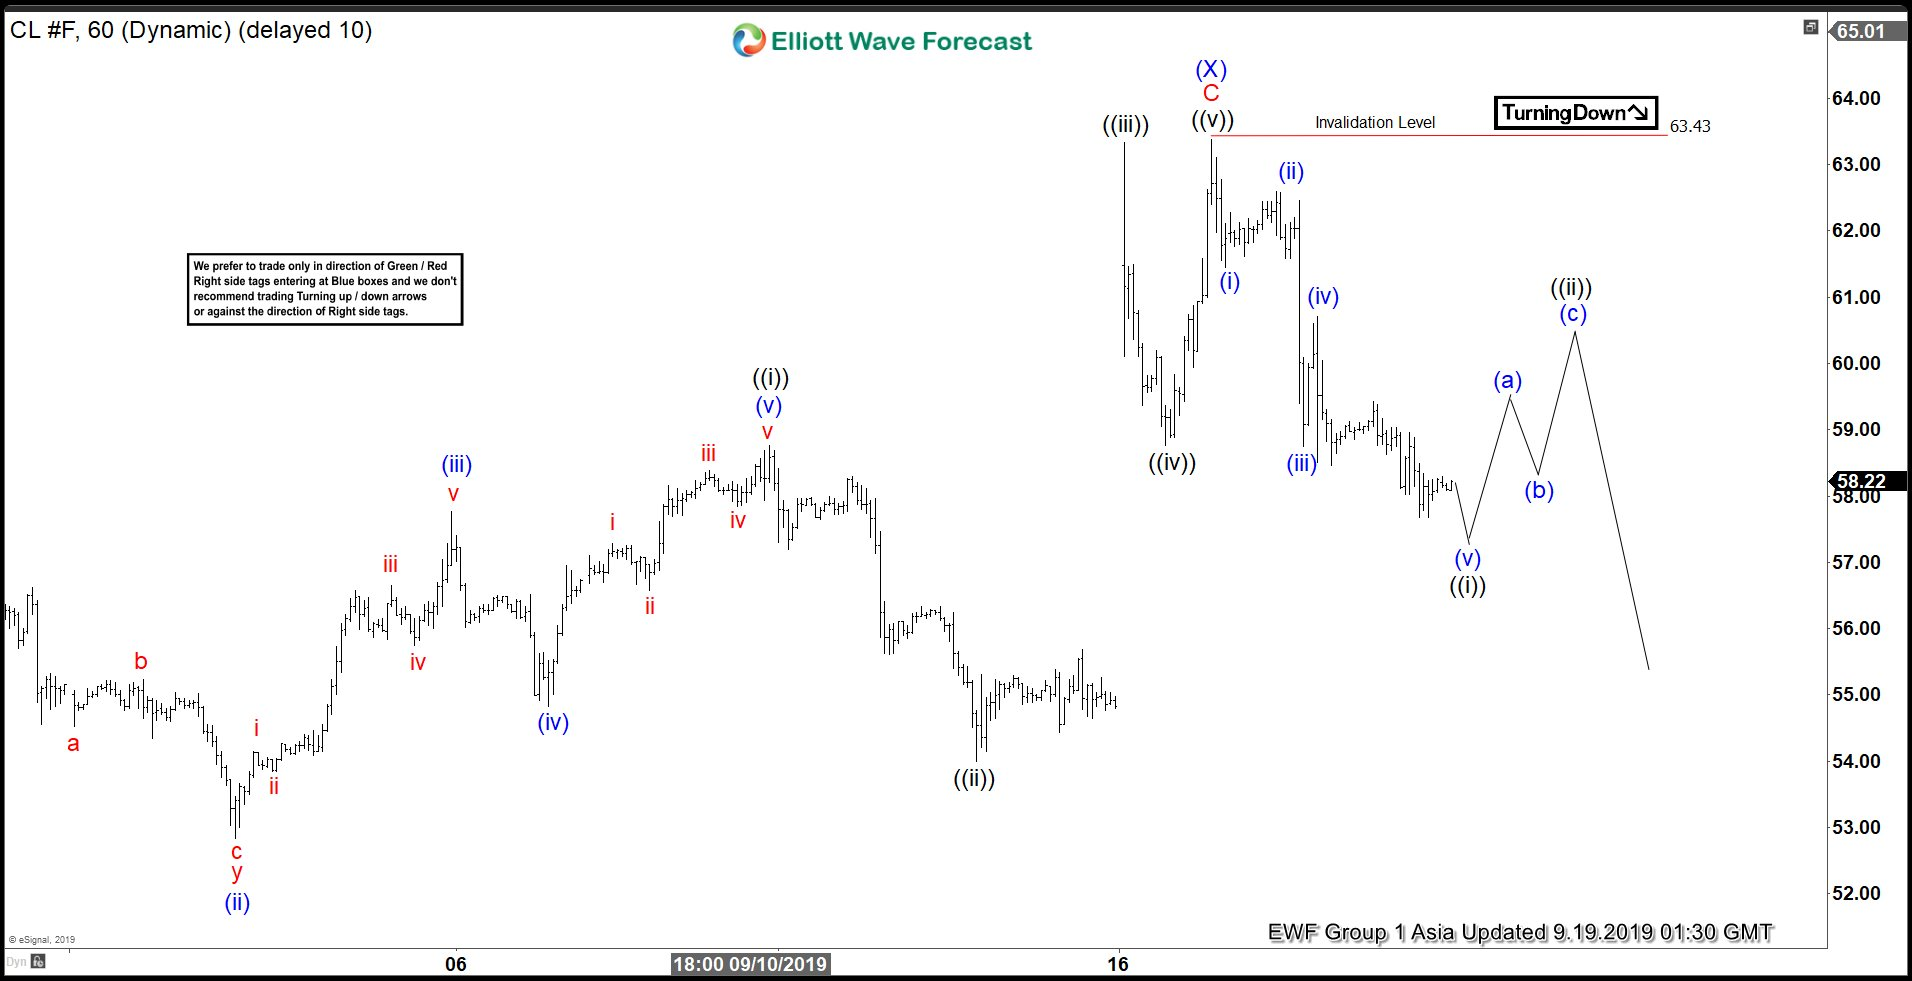 Elliott Wave View: Oil (CL_F) Outlook After Saudi Arabia's Oil Refinery Attack